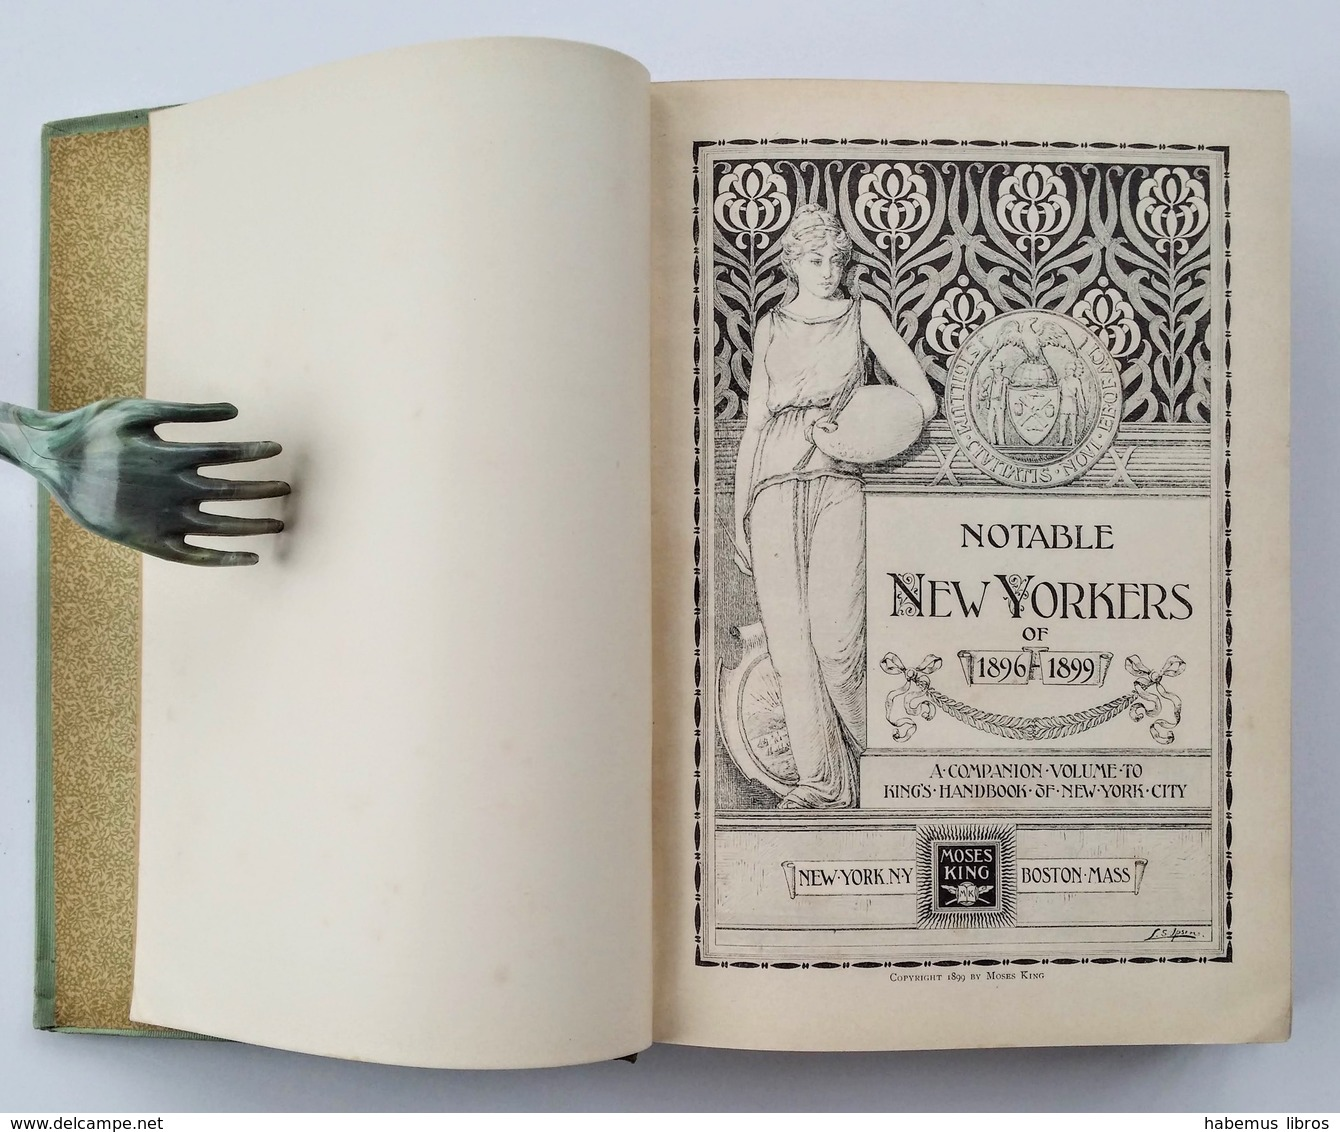 Notable New Yorkers Of 1896-1899. - New-York ; Boston : Moses King, S.d. [copyr. 1899] - Livres, BD, Revues